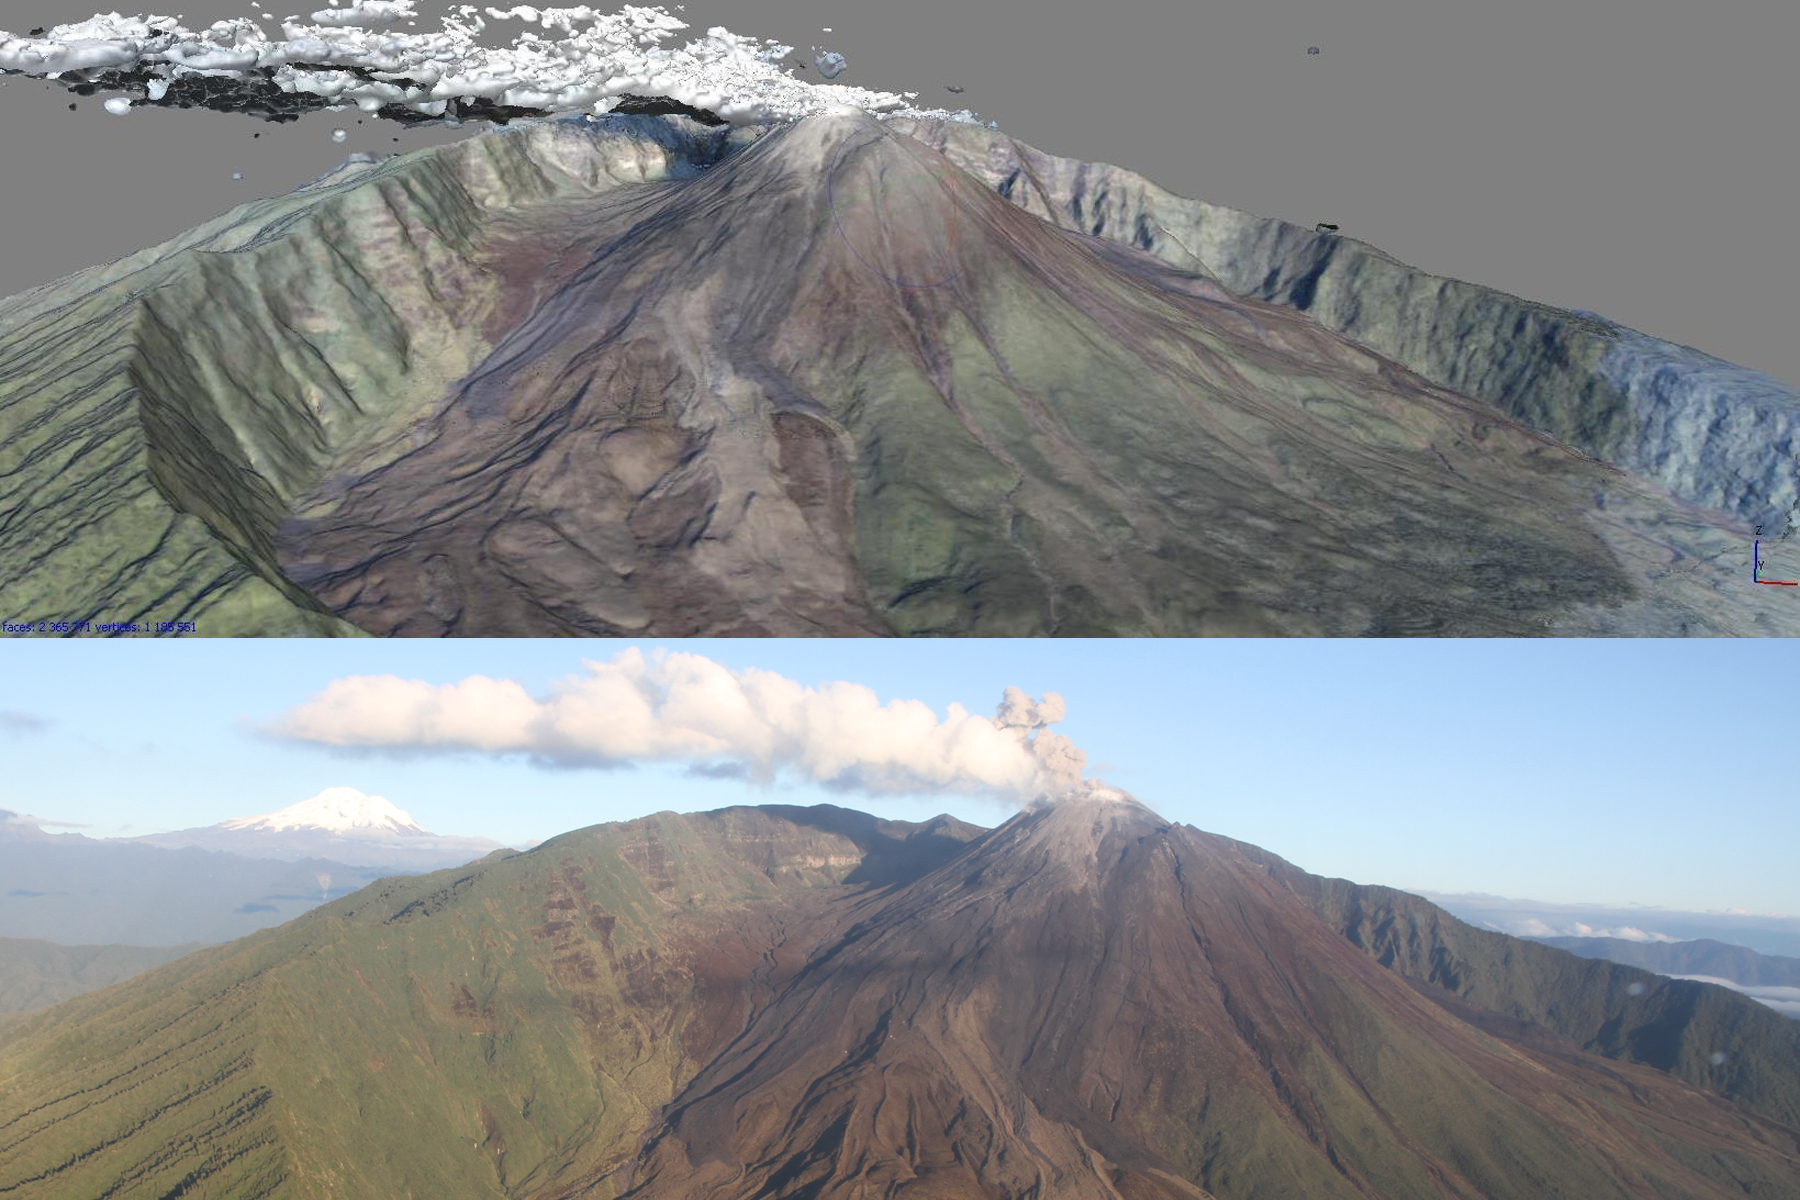 Oblique views of Reventador volcano represented as a DEM with RGB values added (above) and one of several hundred images (below) used in photogrammetric processing.  Note the vapor and ash plume that masks part of the summit lava dome.  Plumes and other atmospheric effects are common problems when imaging active volcanoes and are typically edited out during post-processing analysis.